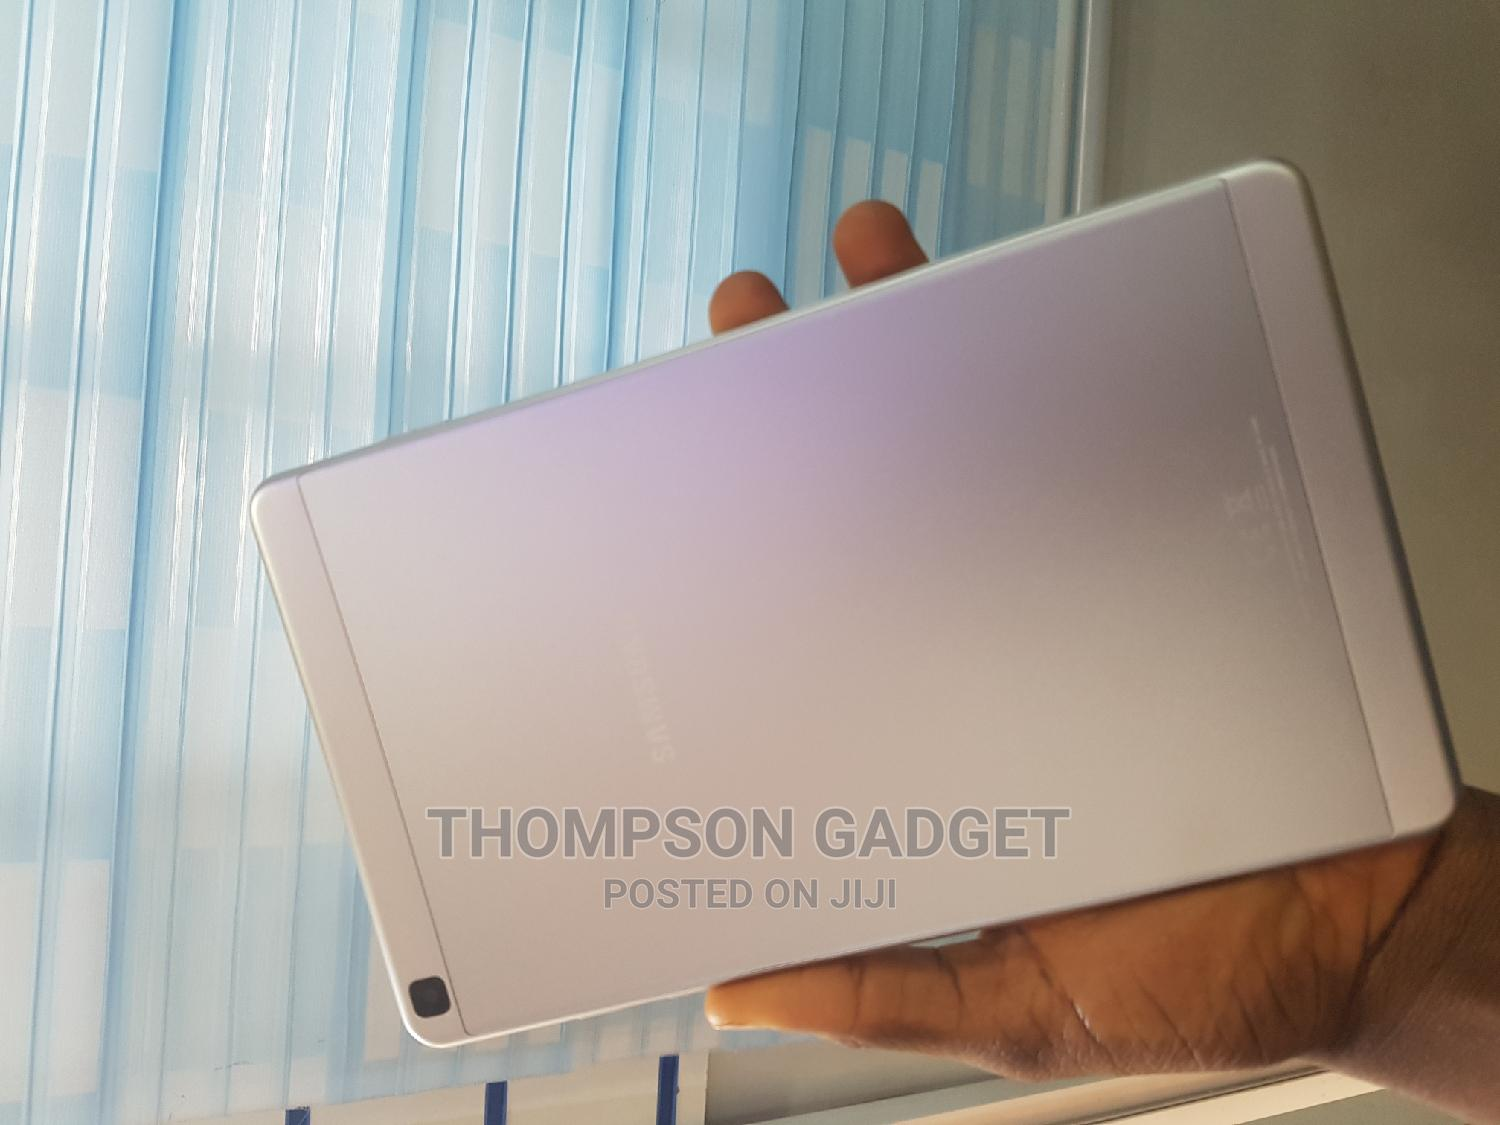 Samsung Galaxy Tab a 7.0 32 GB Silver   Tablets for sale in Lugbe District, Abuja (FCT) State, Nigeria